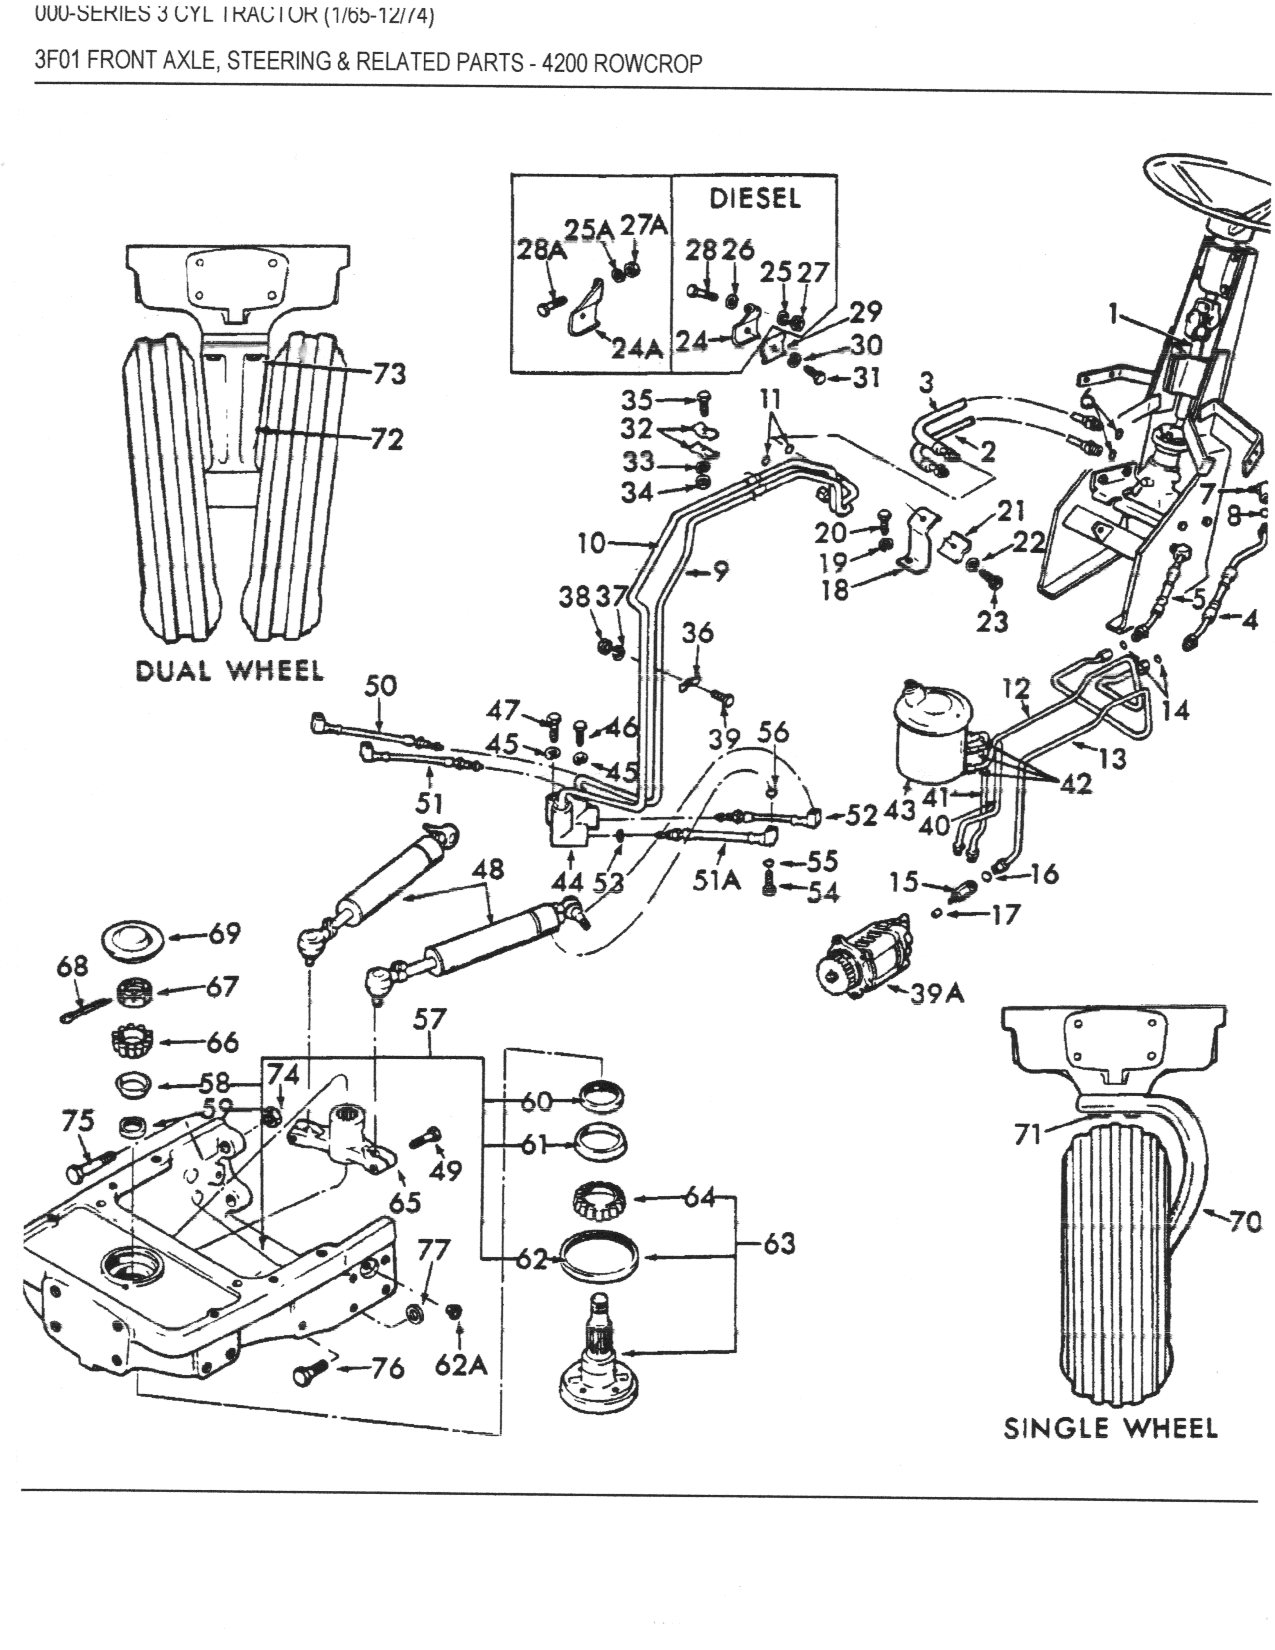 Ford 5000 Parts Diagram : Ford tractor ke diagram free engine image for